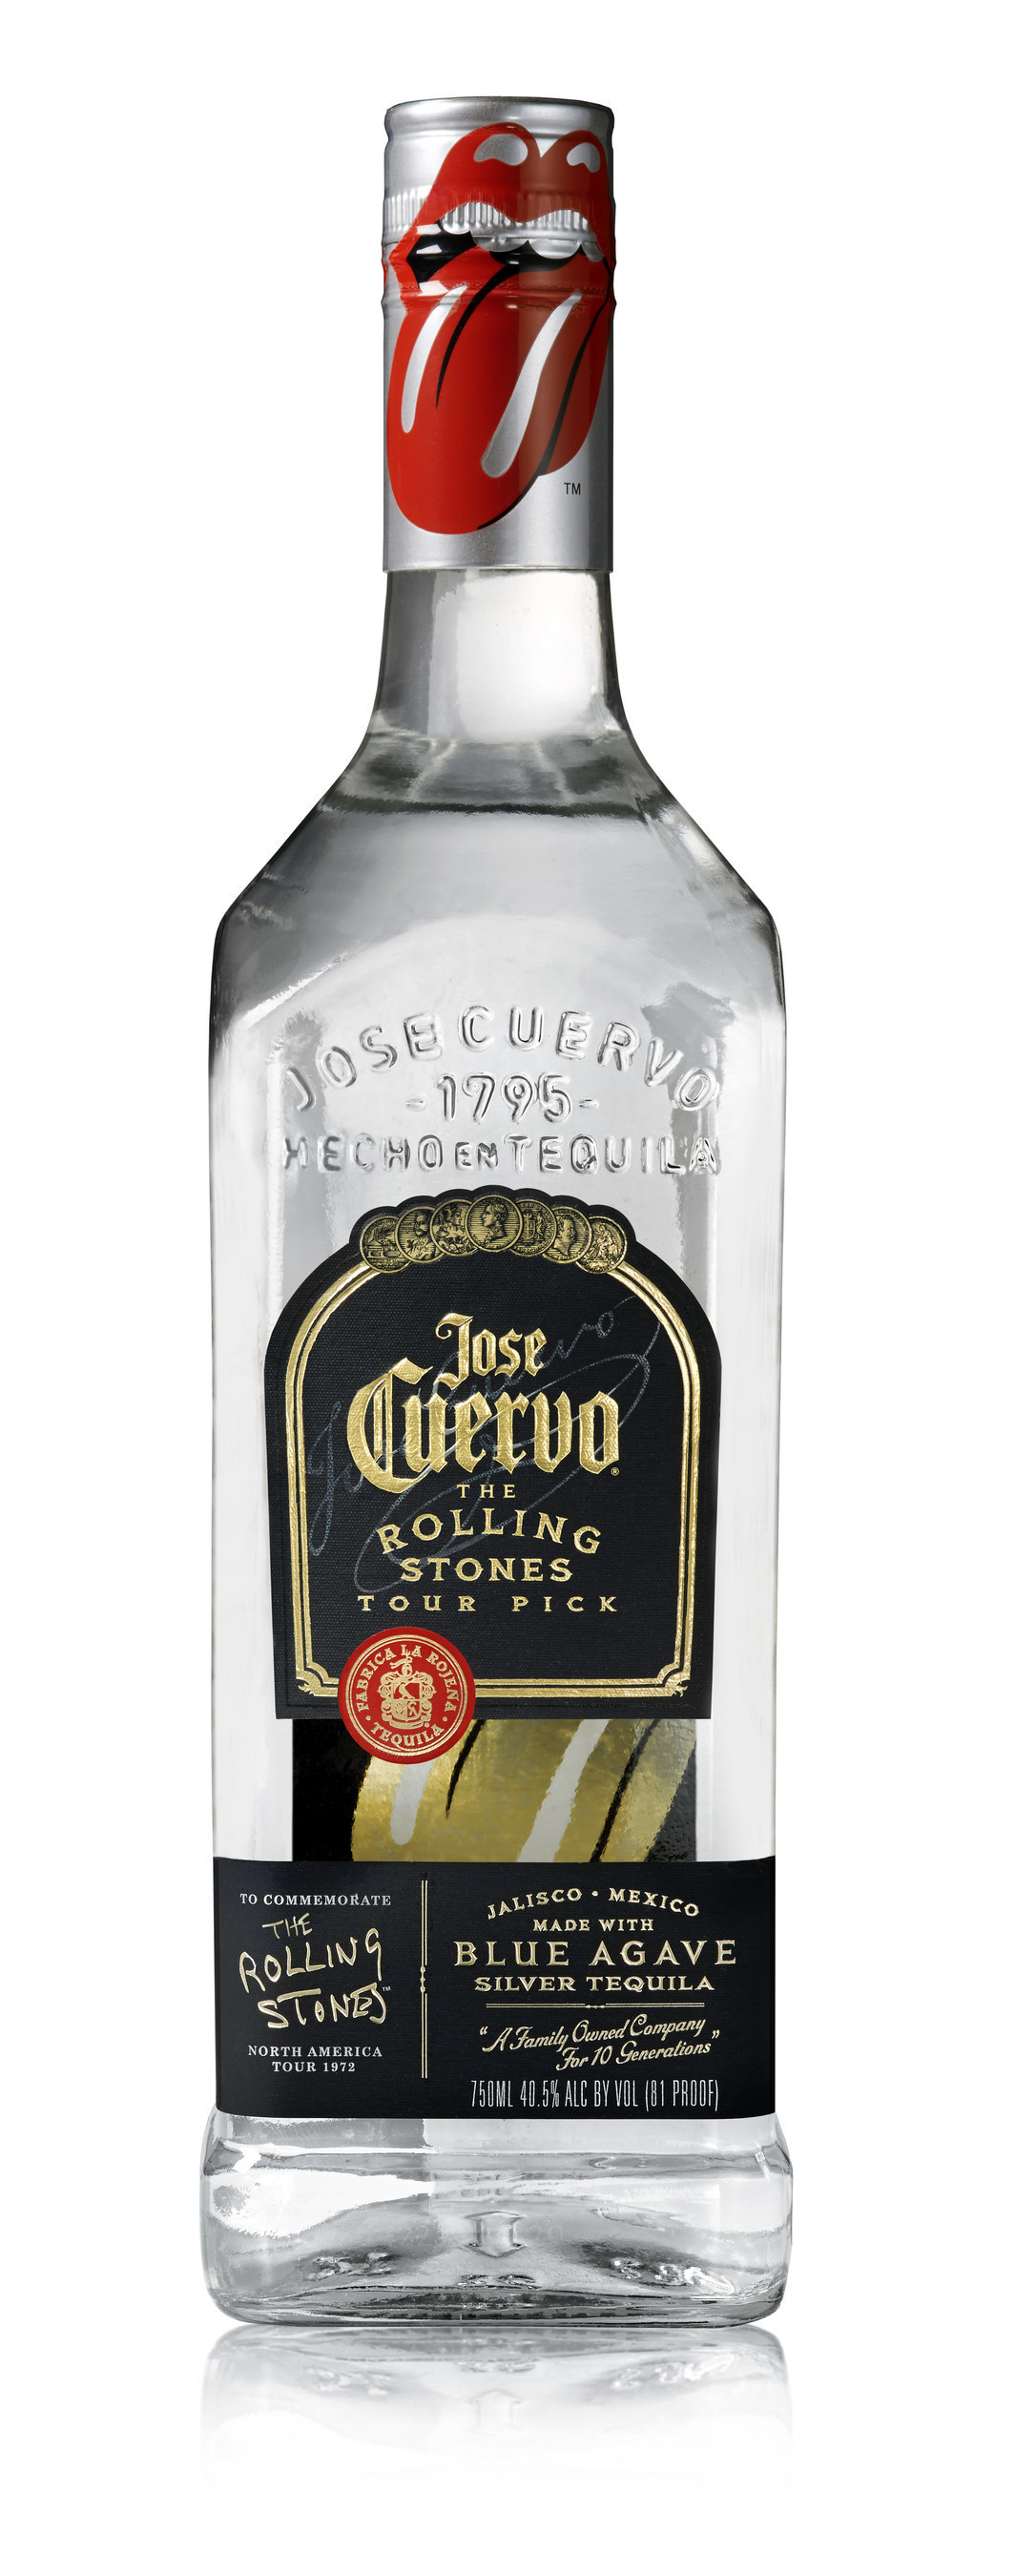 """Jose Cuervo takes L.A. Rock N' Roll fans for a ride on the """"Tequila Sunrise Bus Tour"""" to celebrate the special edition """"The Rolling Stones"""" bottles."""